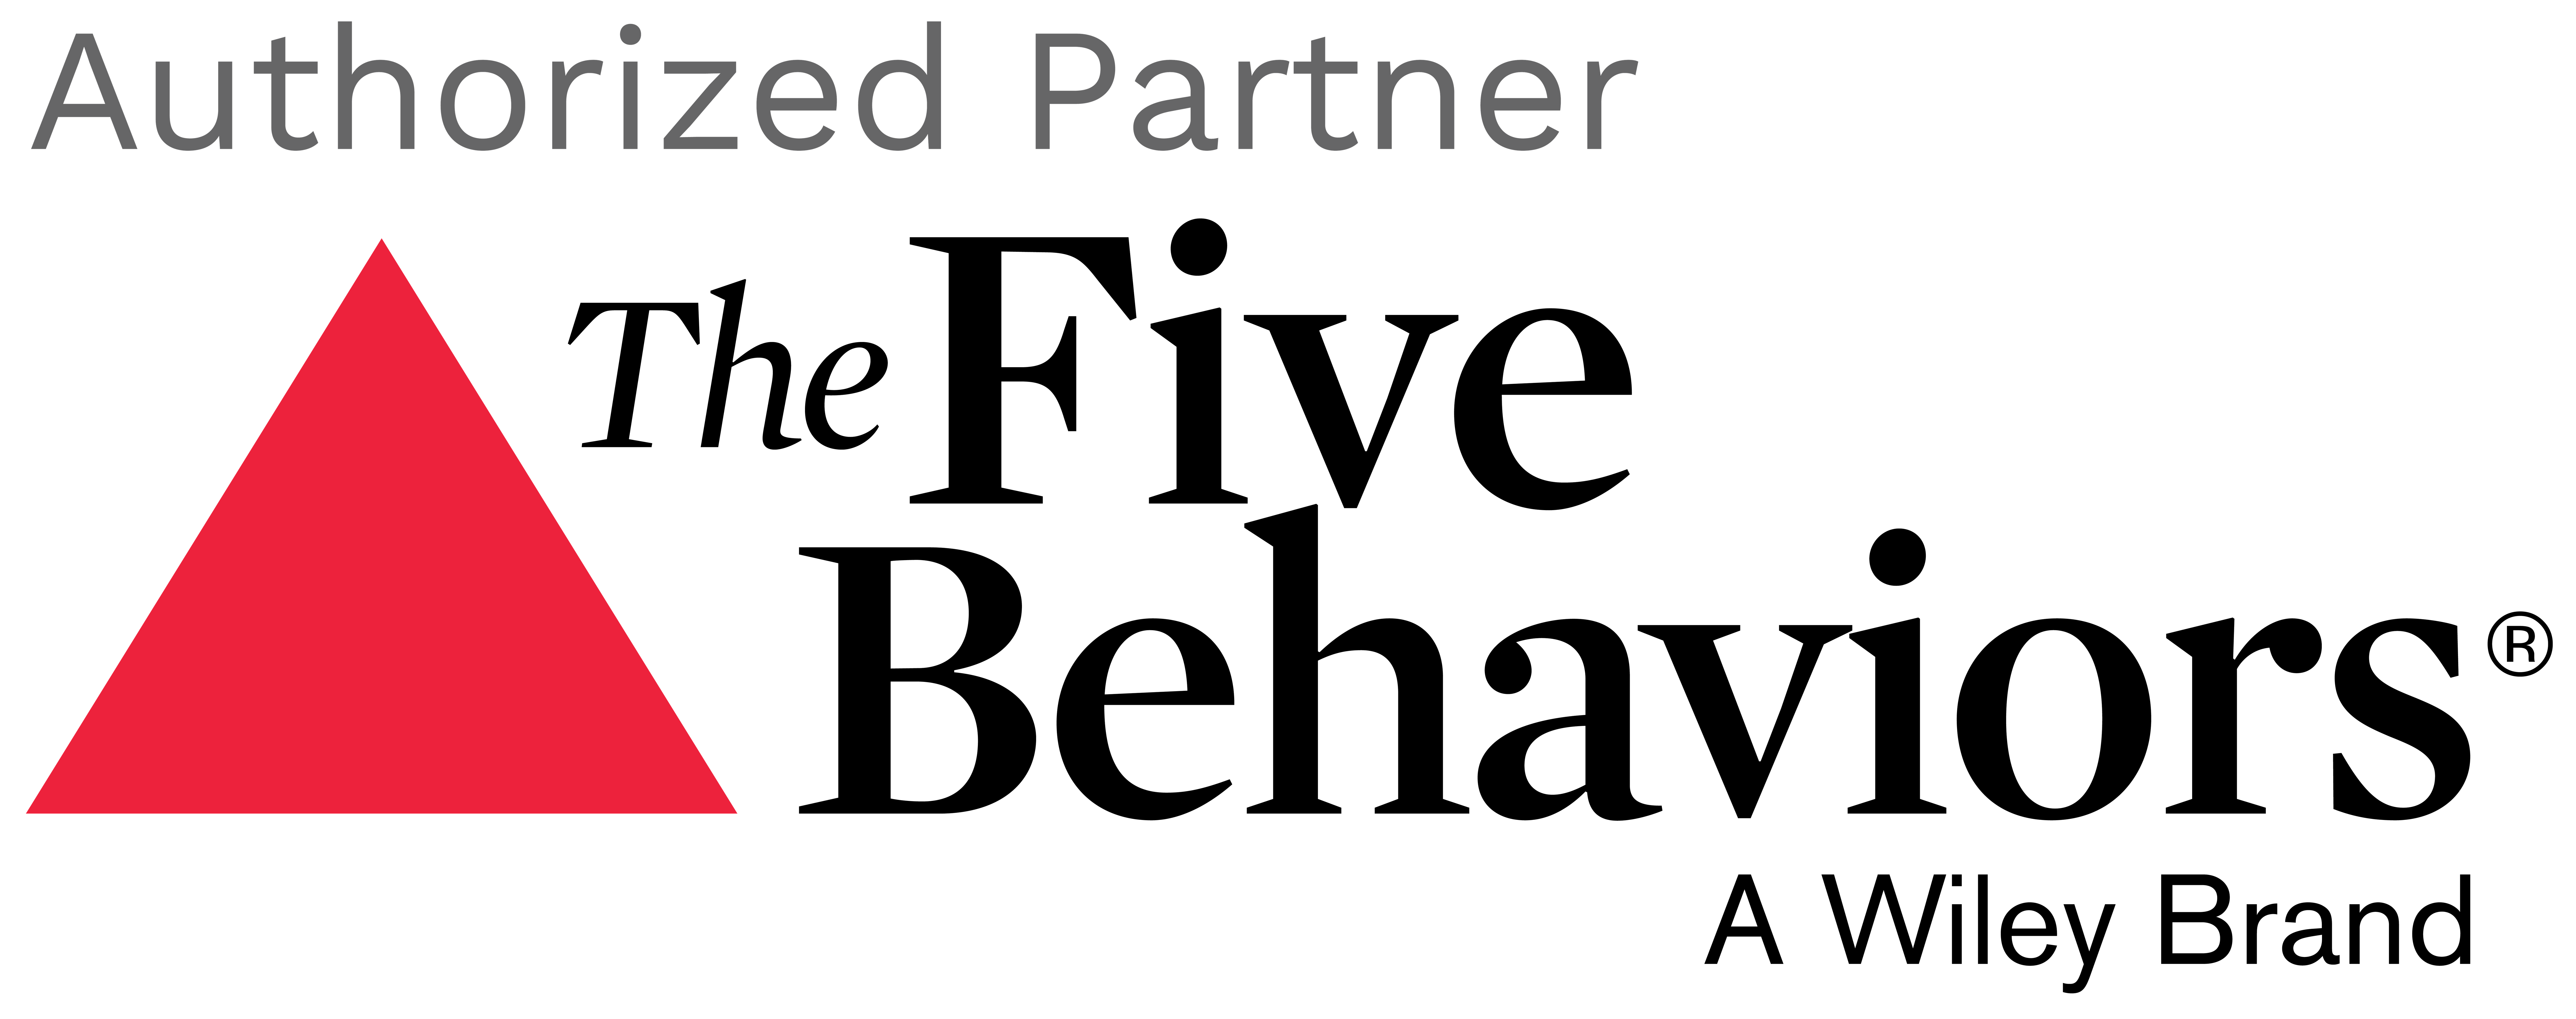 Five-Behaviors-Authorized-Partner-logo